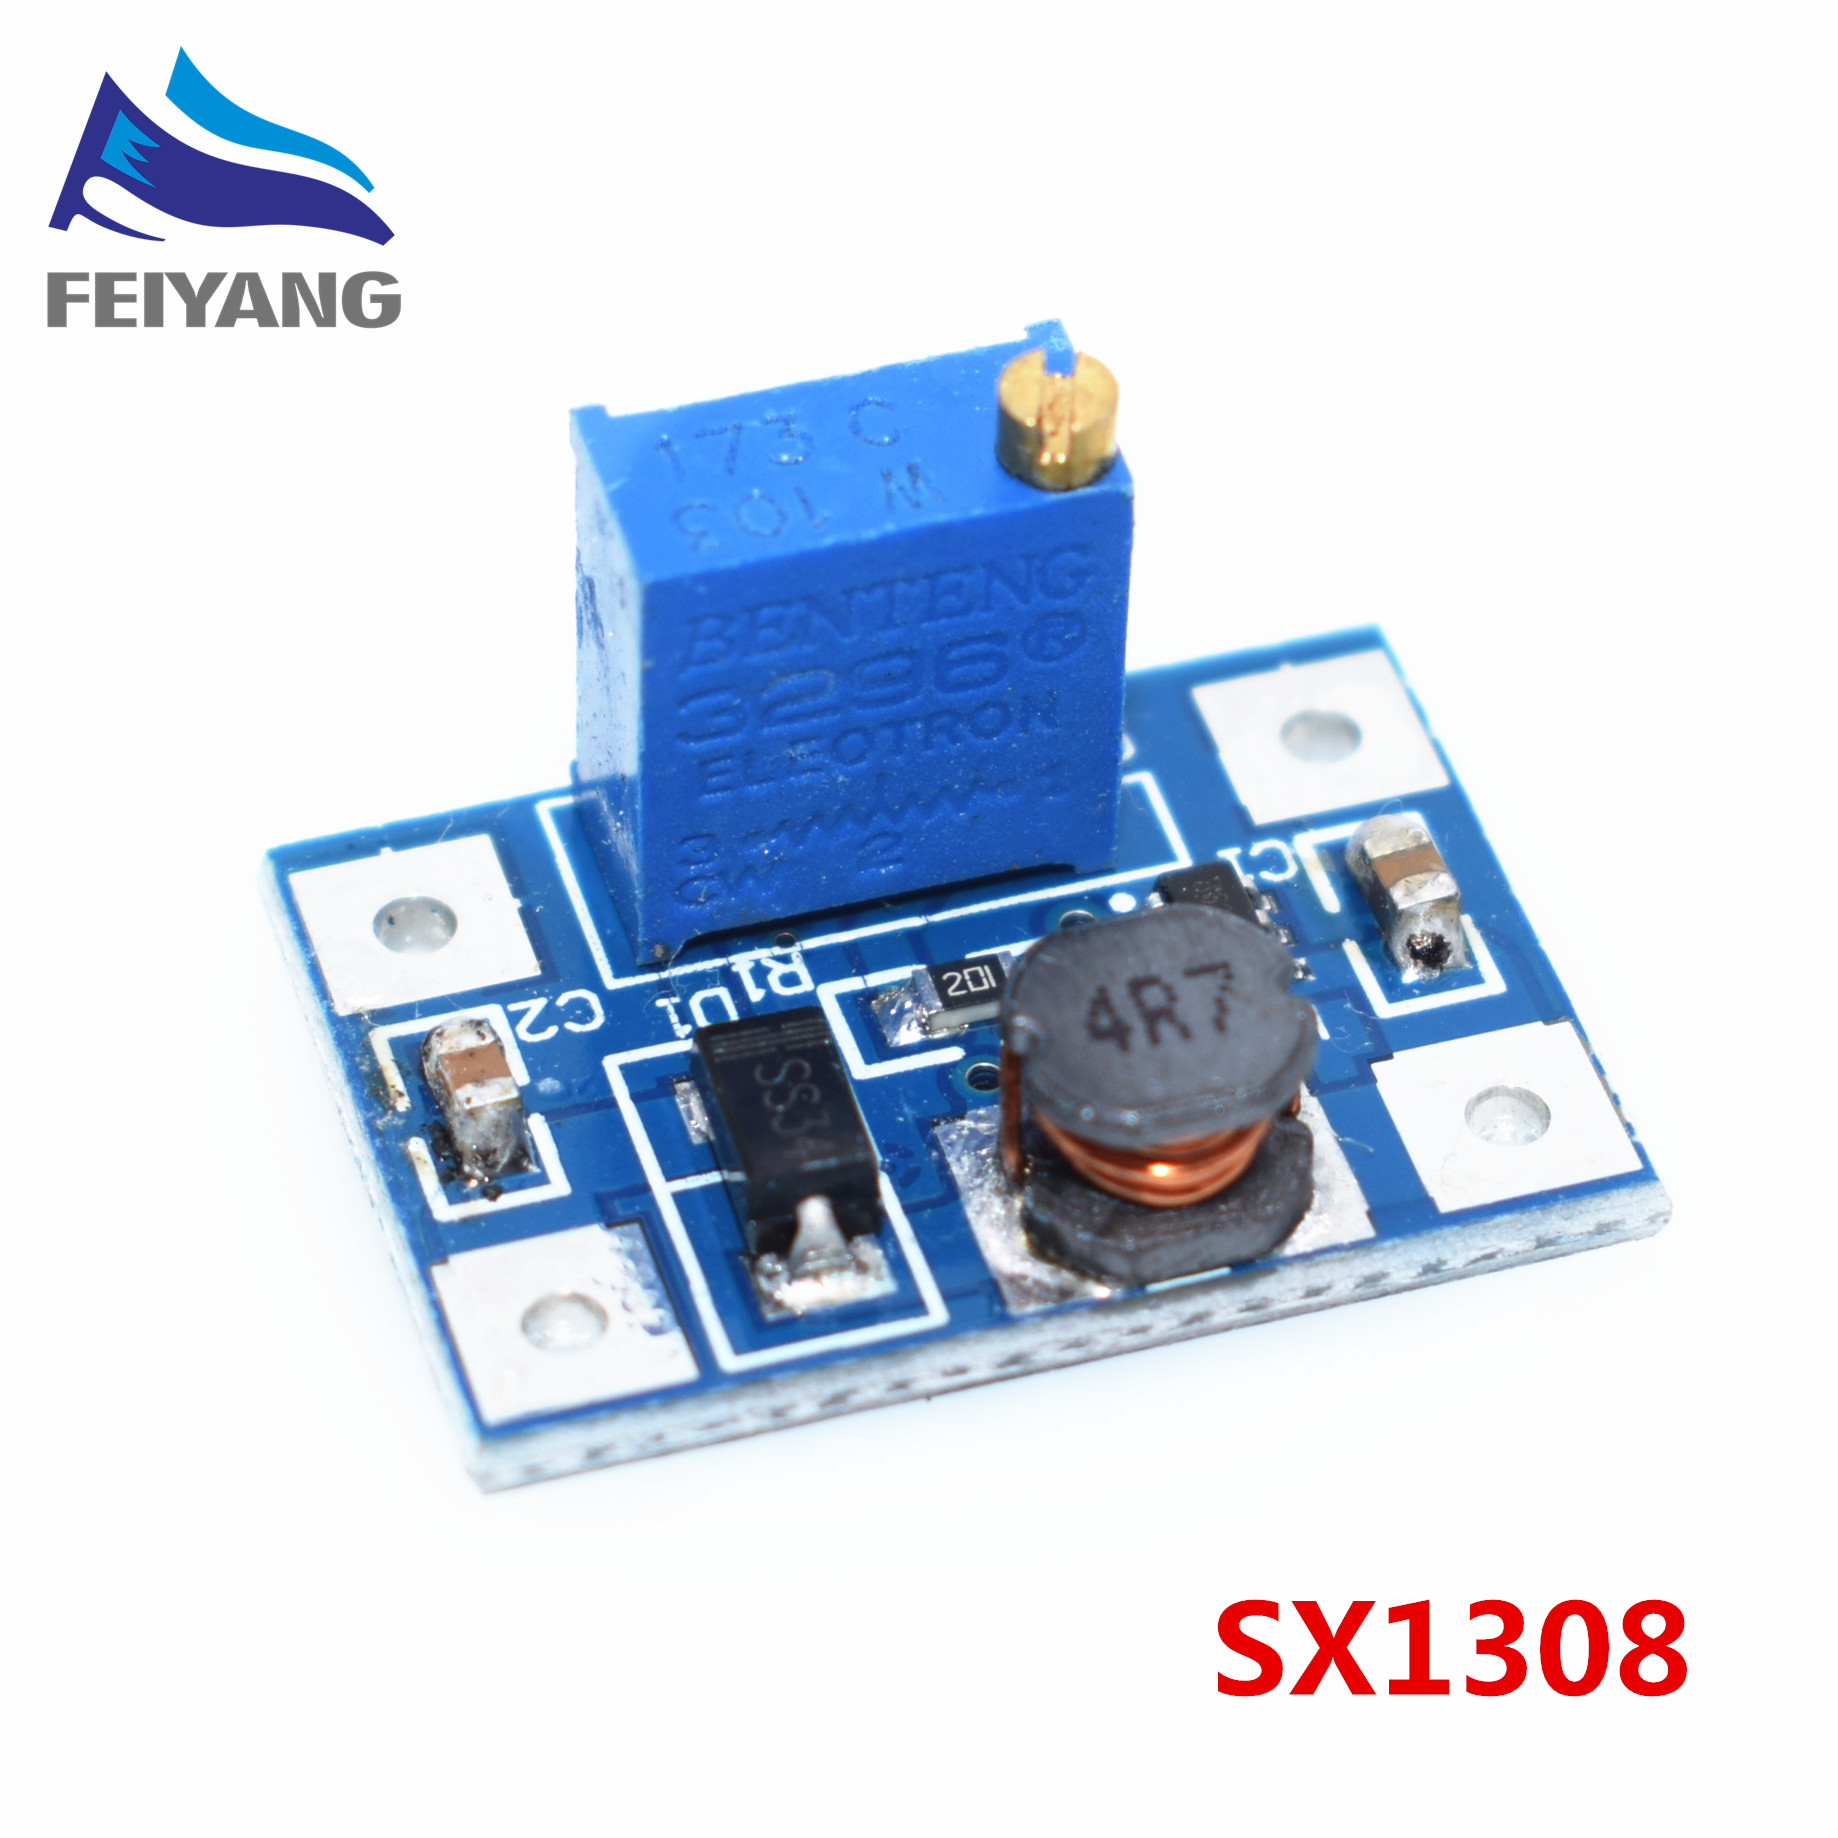 B12 10pcs Smart Electronics DC-DC SX1308 Step-UP Adjustable Power Module Step Up Boost Converter 2-24V to 2-28V 2A